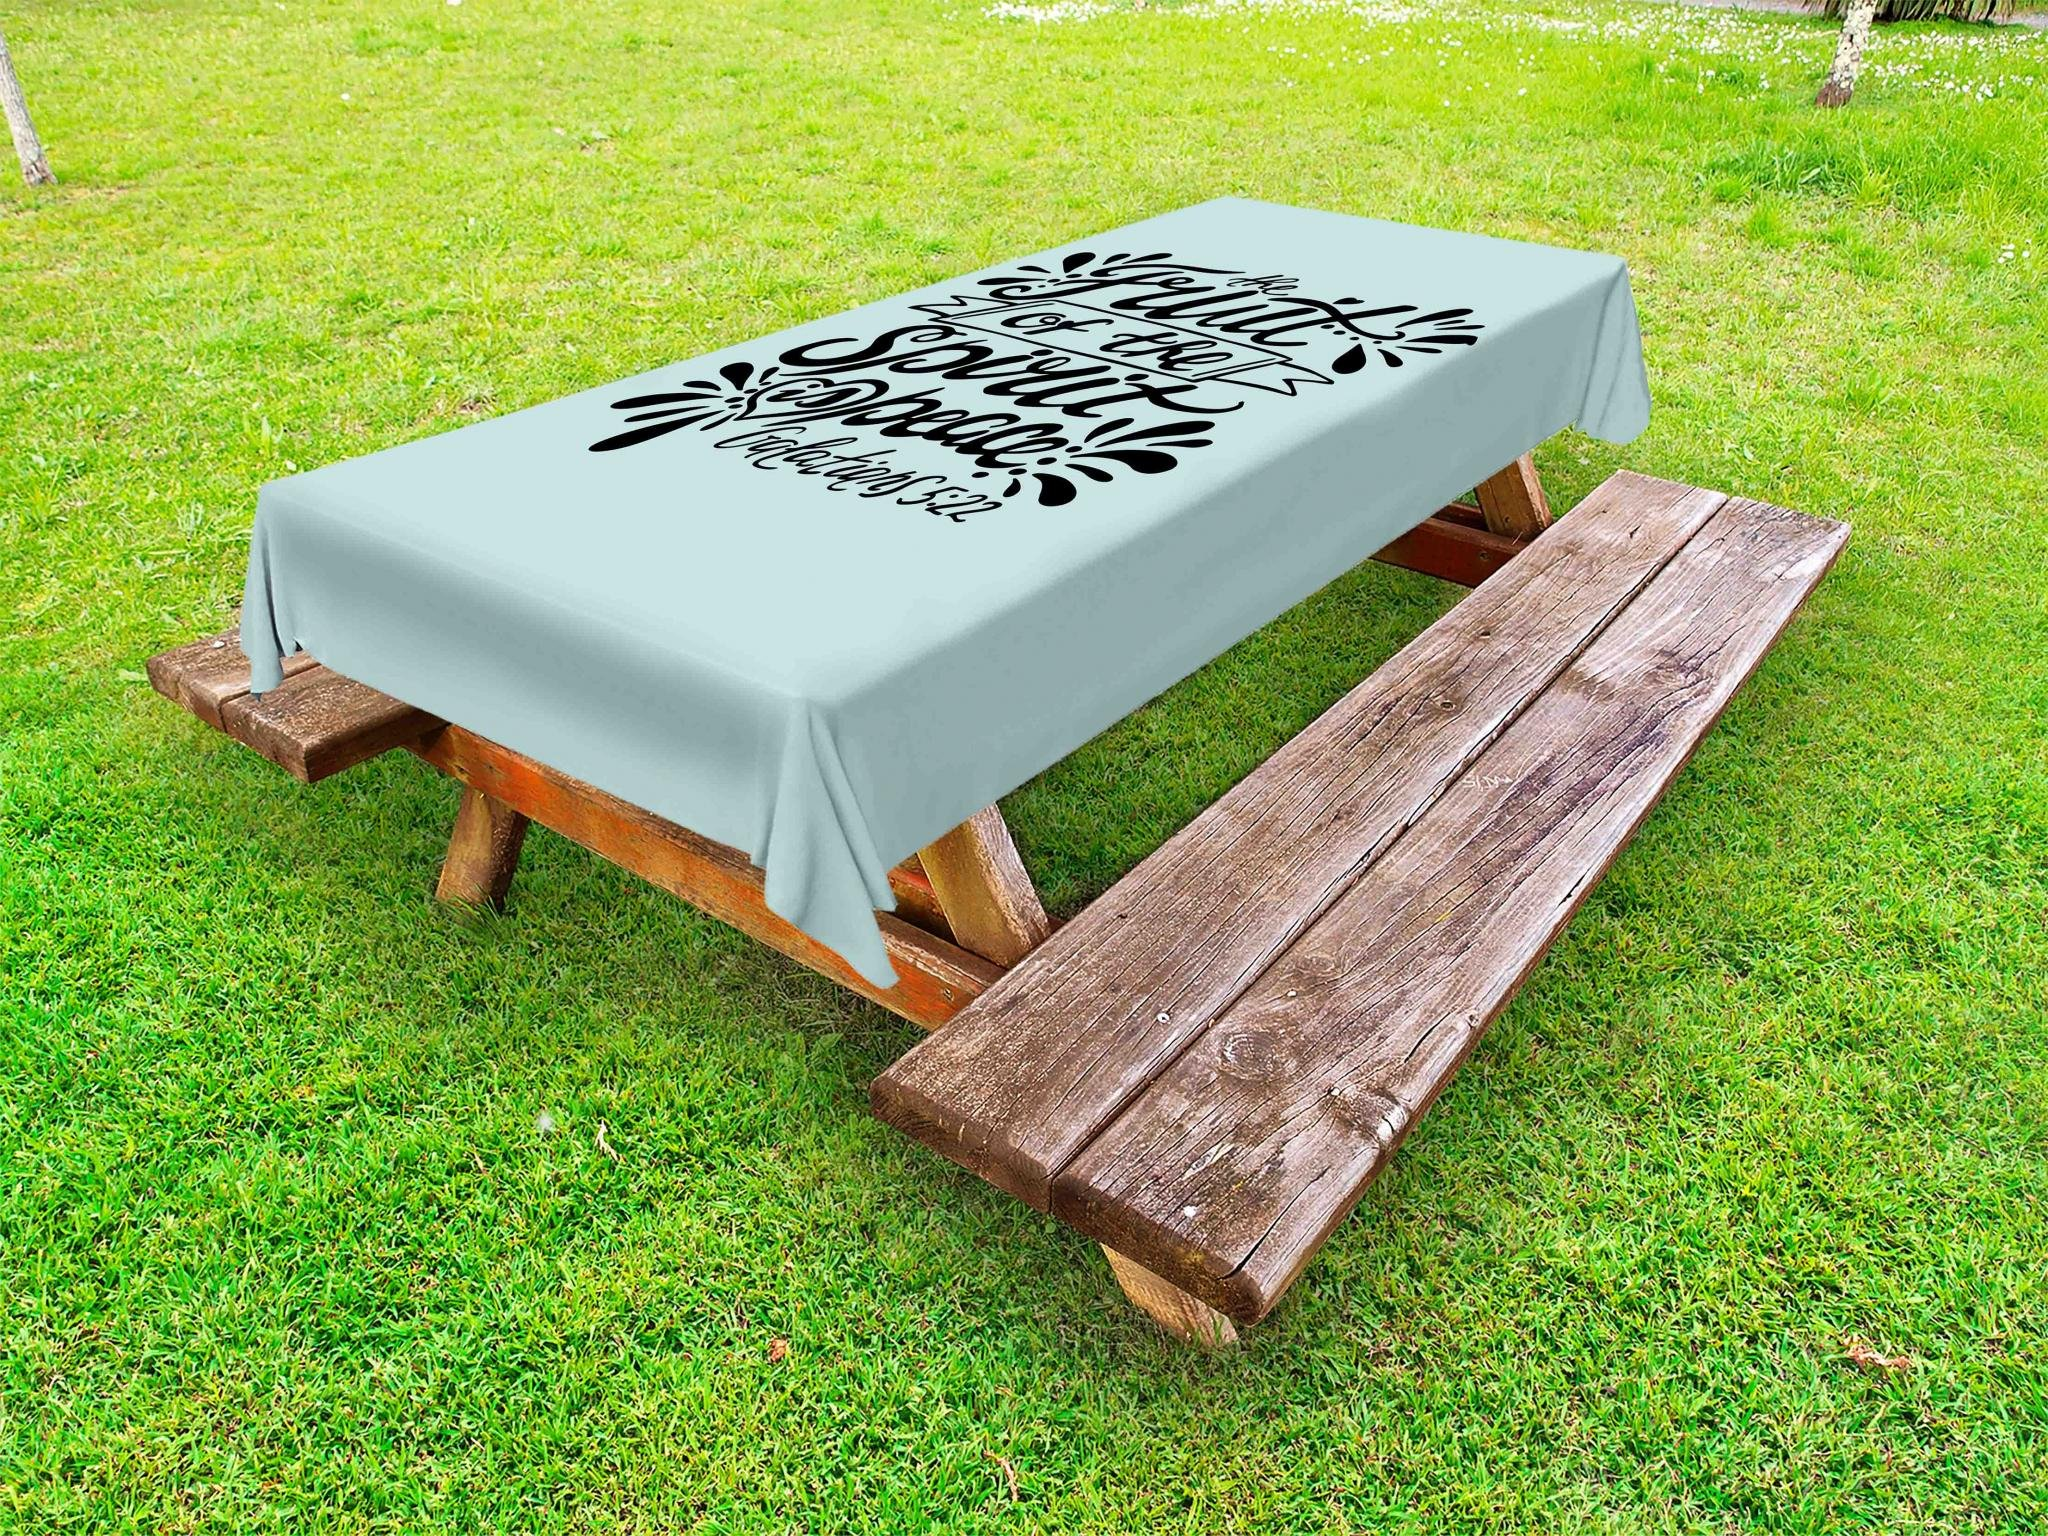 Lunarable Religious Outdoor Tablecloth, Hand Lettering The Fruit of The Spirit is Peace Quote Spiritual Verse, Decorative Washable Picnic Table Cloth, 58 X 104 inches, Baby Blue and Black